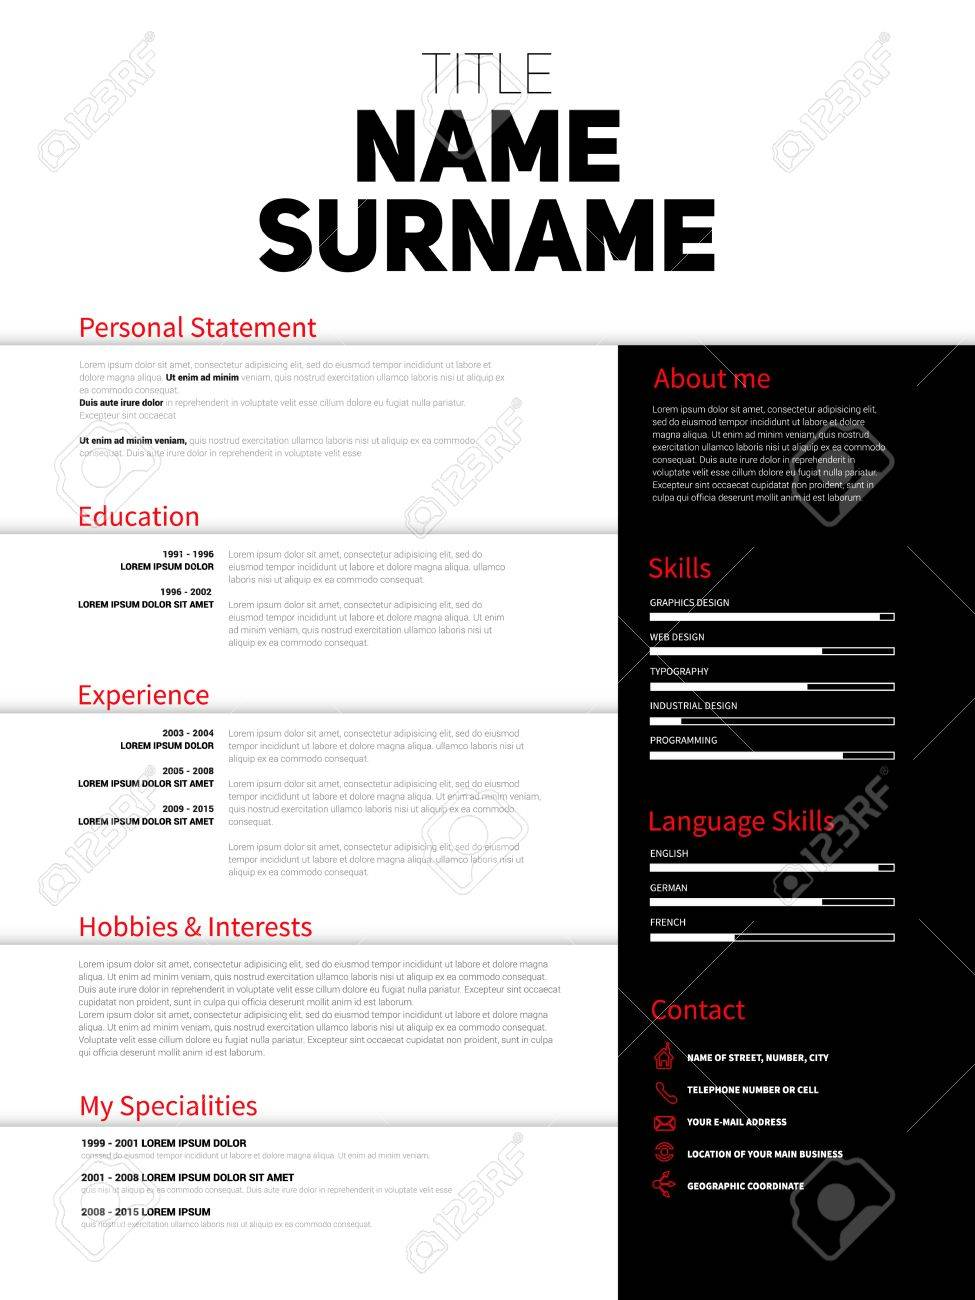 resume minimalist cv resume template with simple design company application cv curriculum vitae - Minimalist Resume Template